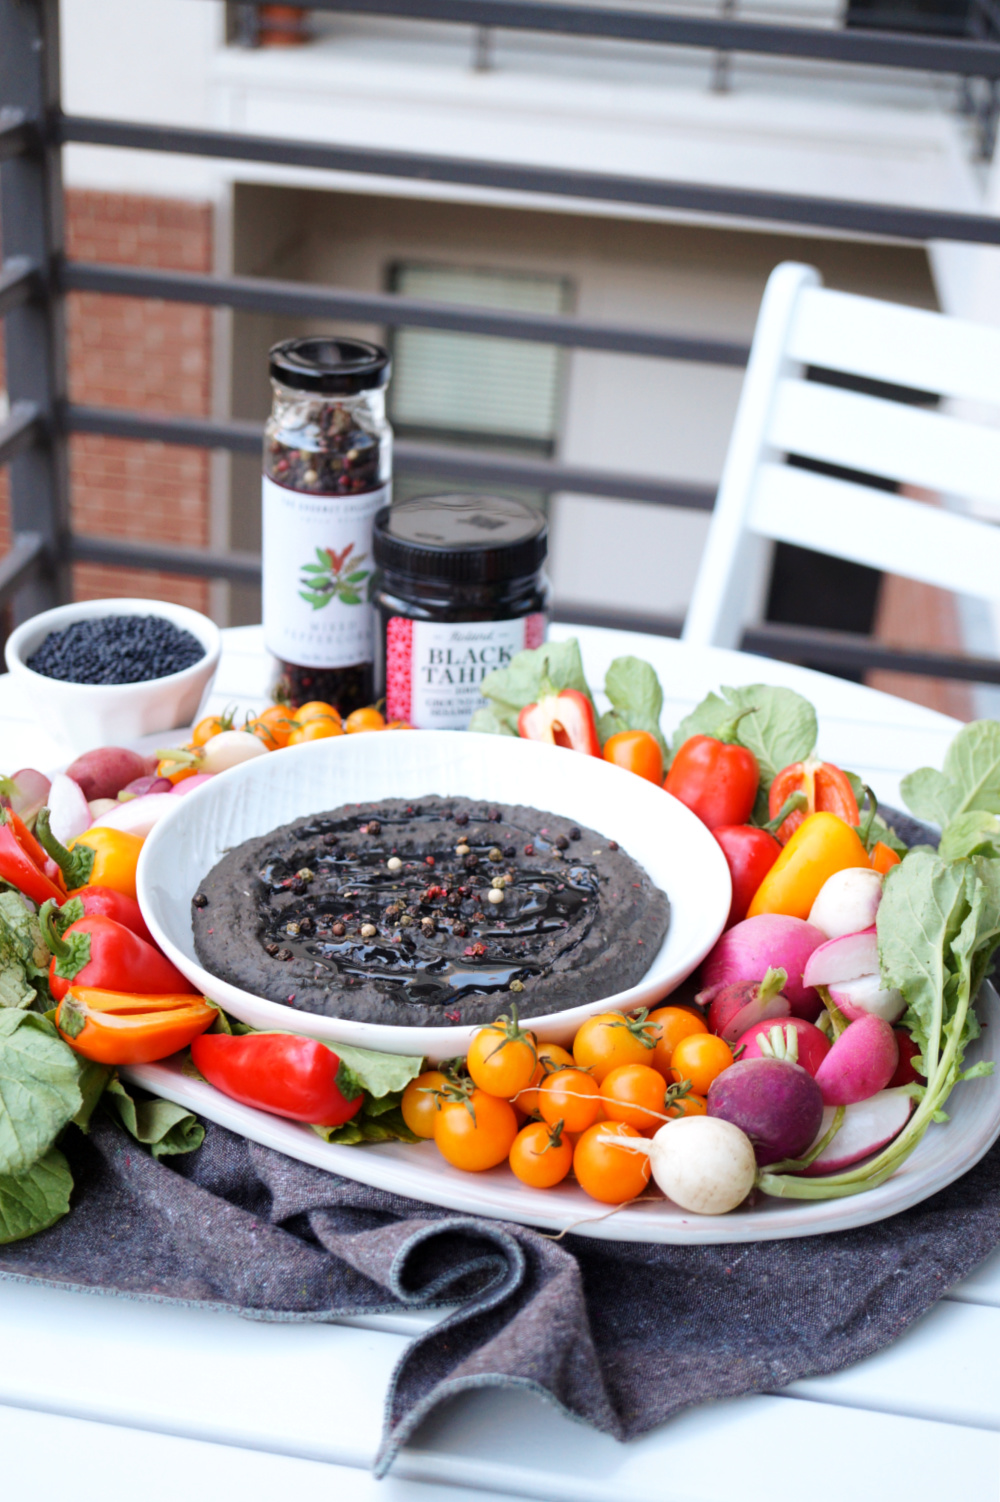 far away shot of black lentil hummus with colorful vegetables on a tray